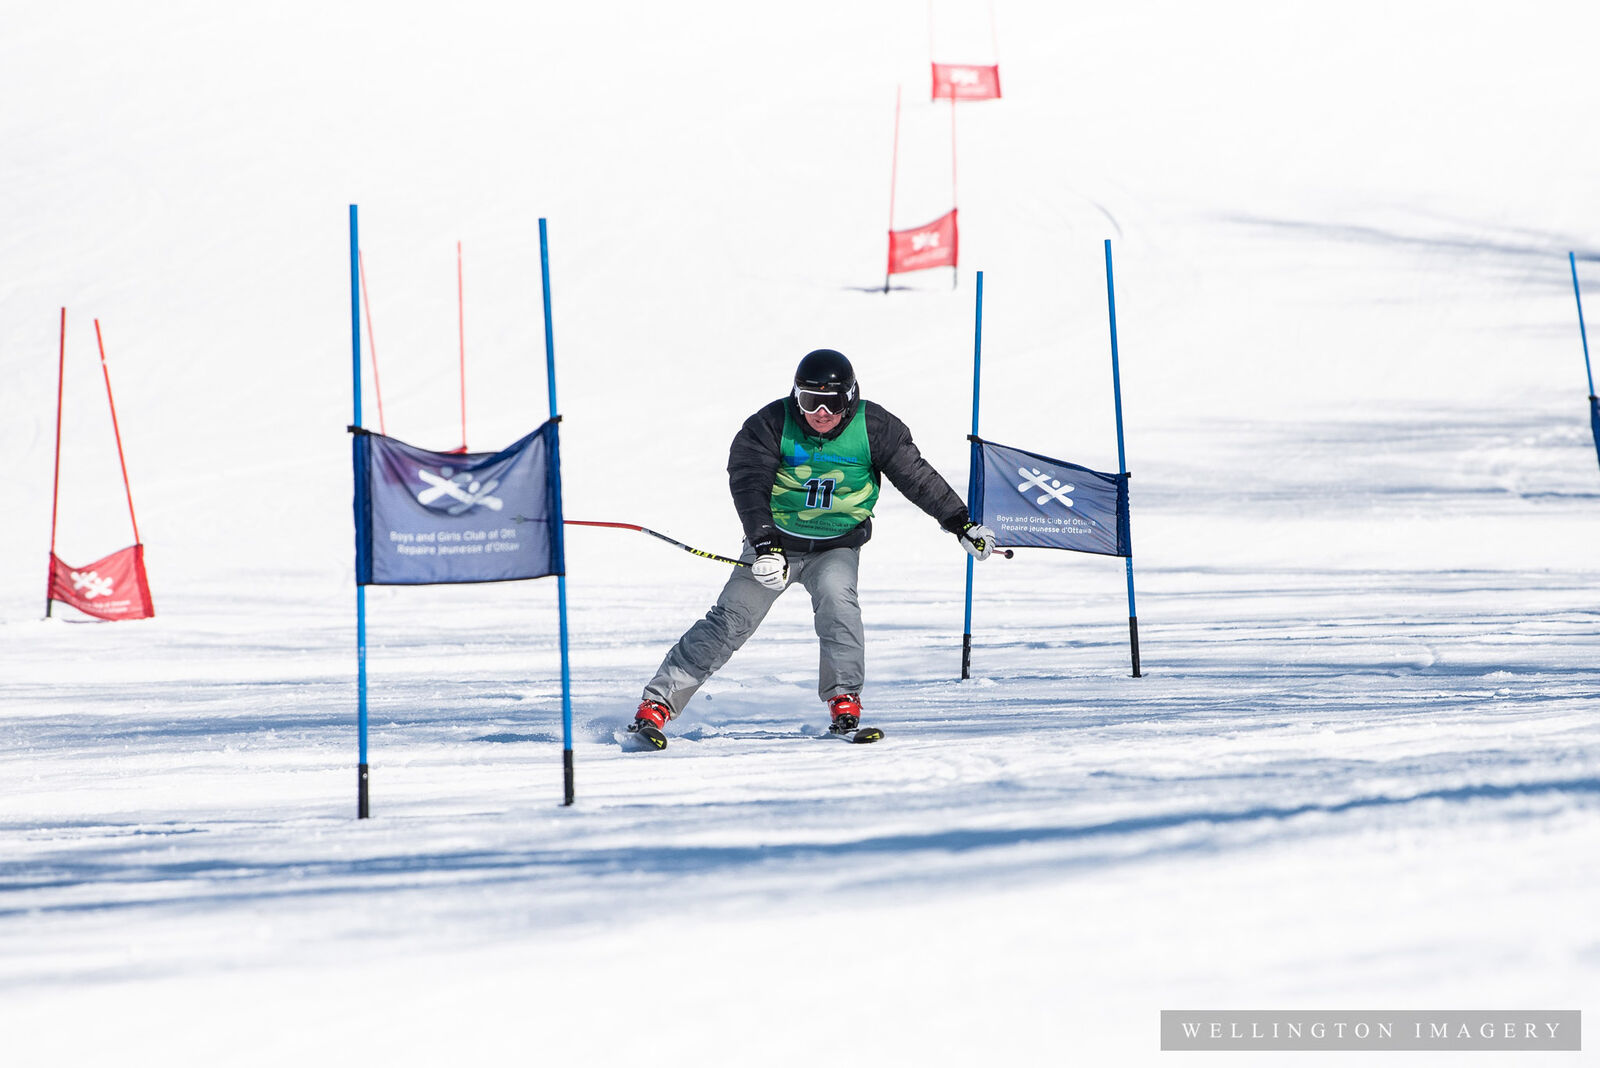 ©WELLINGTONIMAGERY 20190228 143314 BGCO Skiathon 1720 WM 2048px